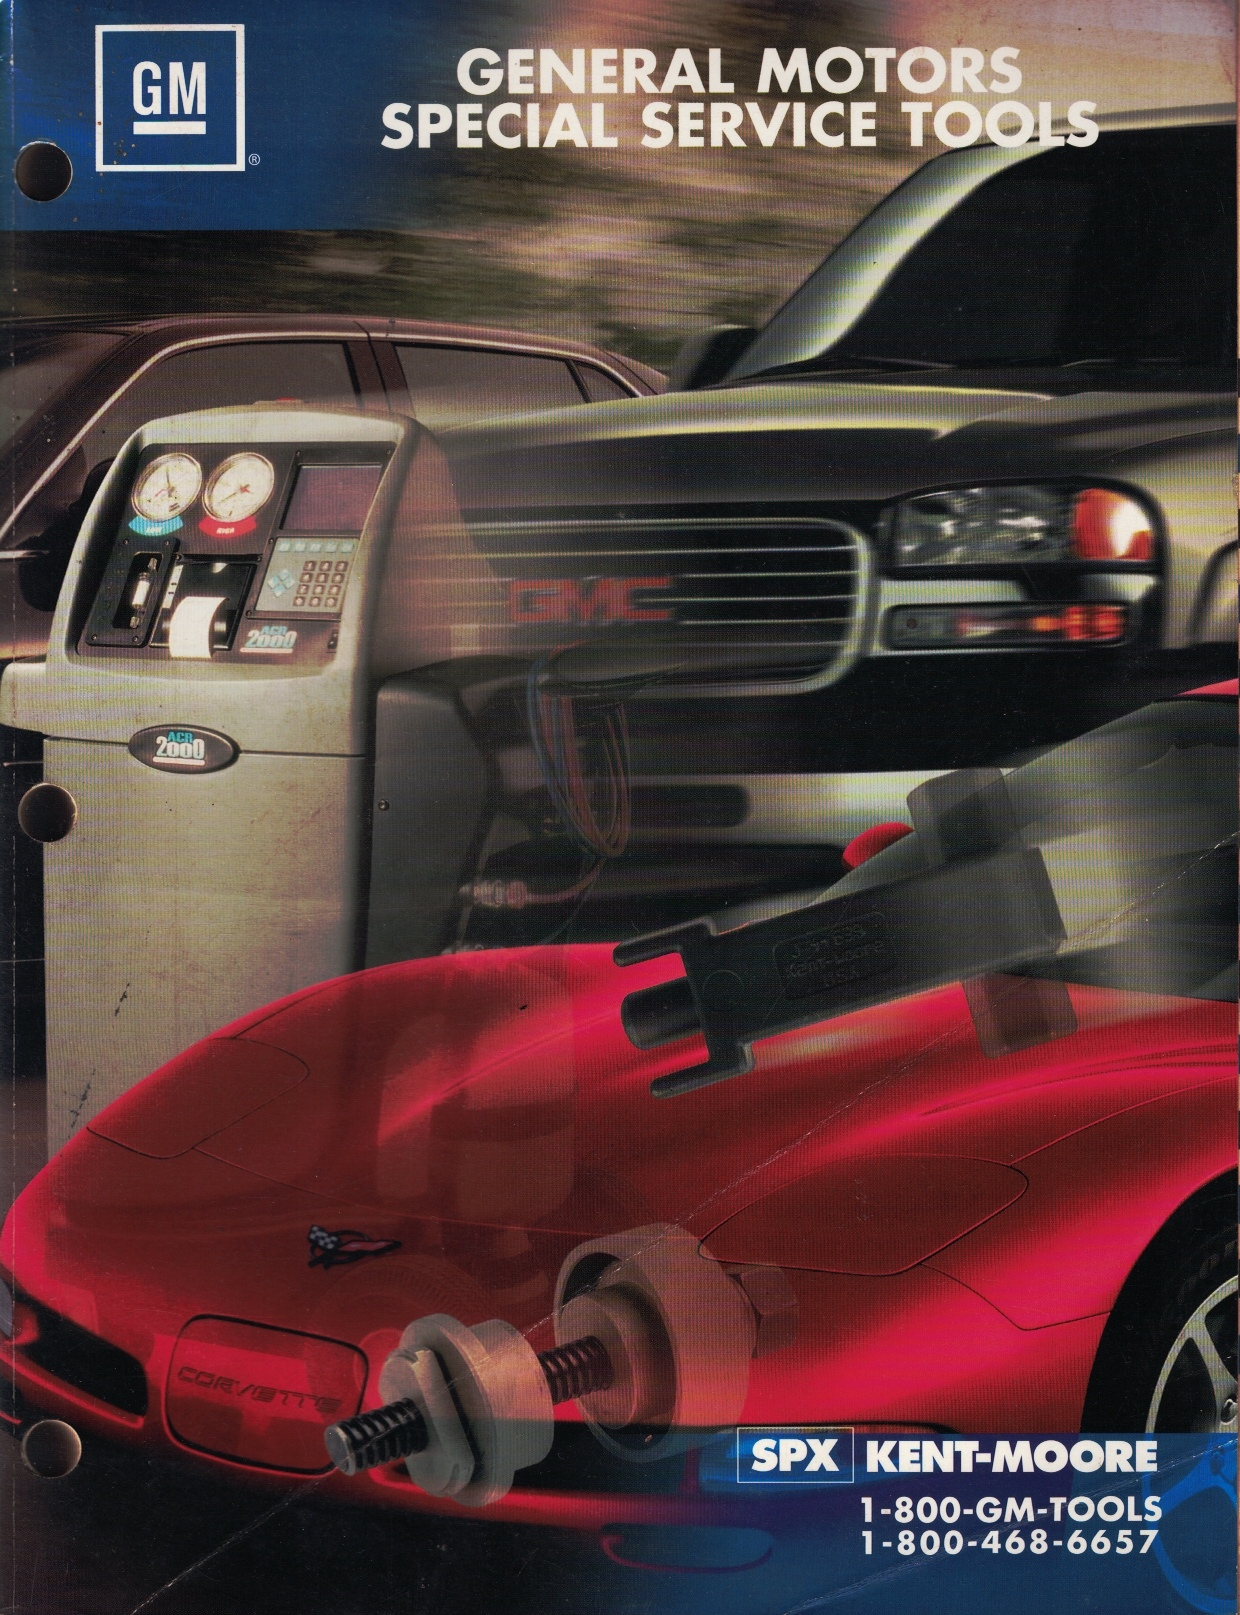 Image for SPX Kent-Moore General Motors (GM) Special Service Tools [Catalog]